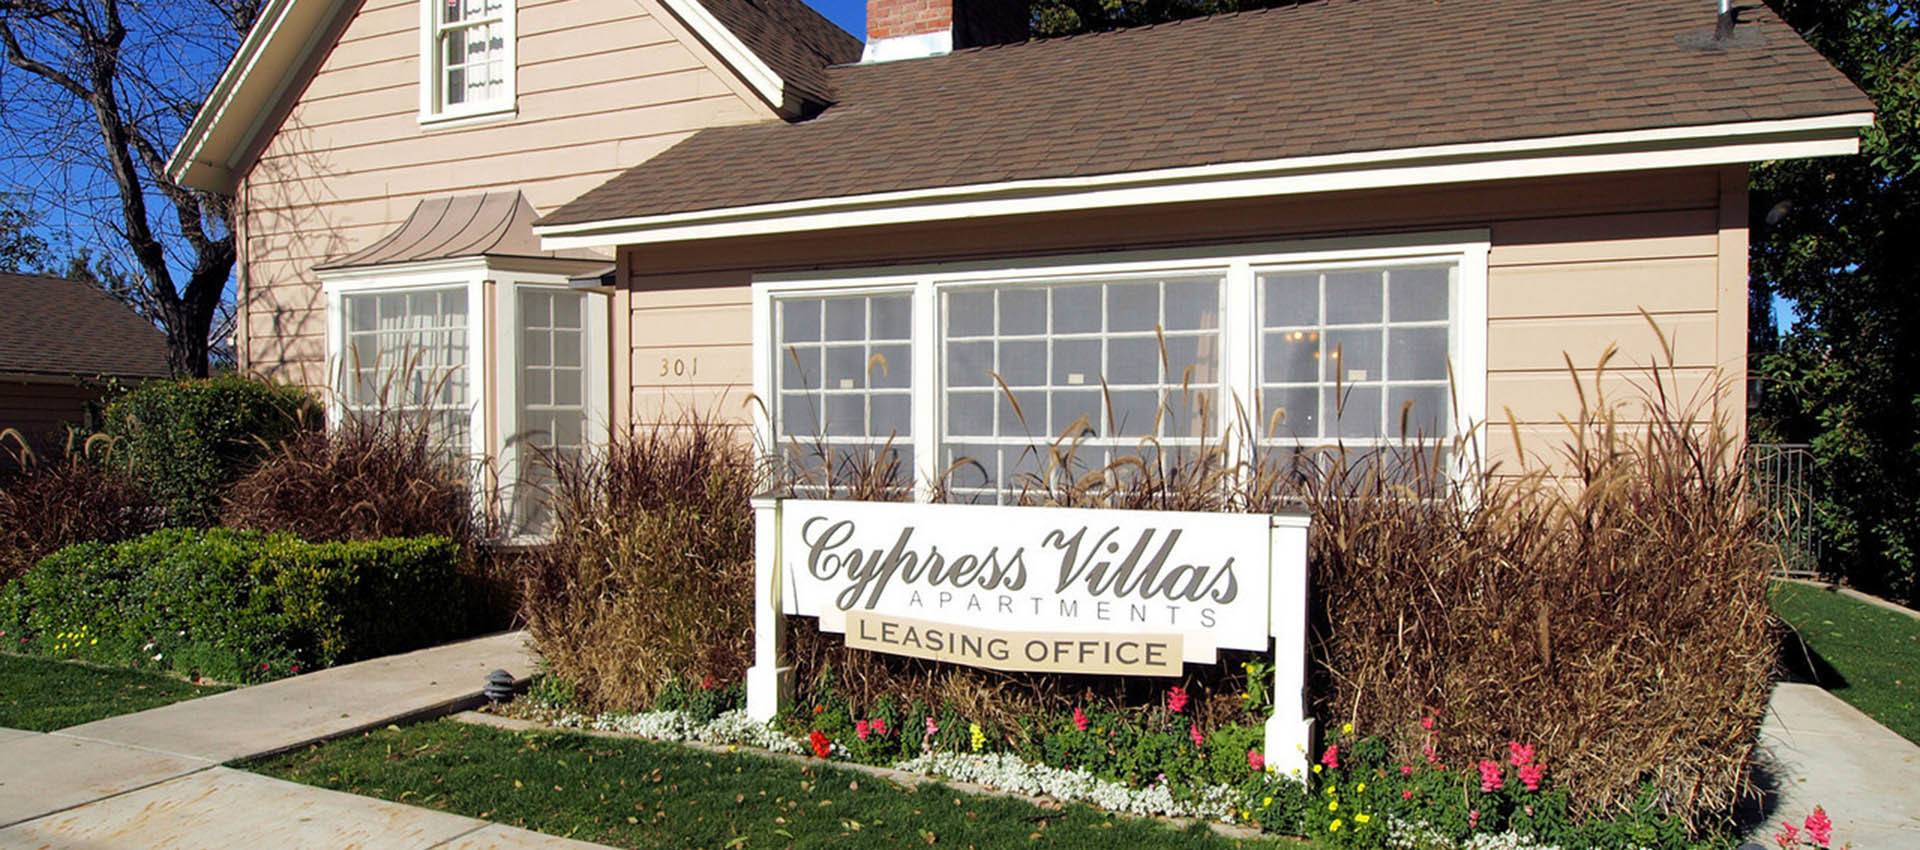 Leasing Office at Cypress Villas Apartment Homes in Redlands, CA